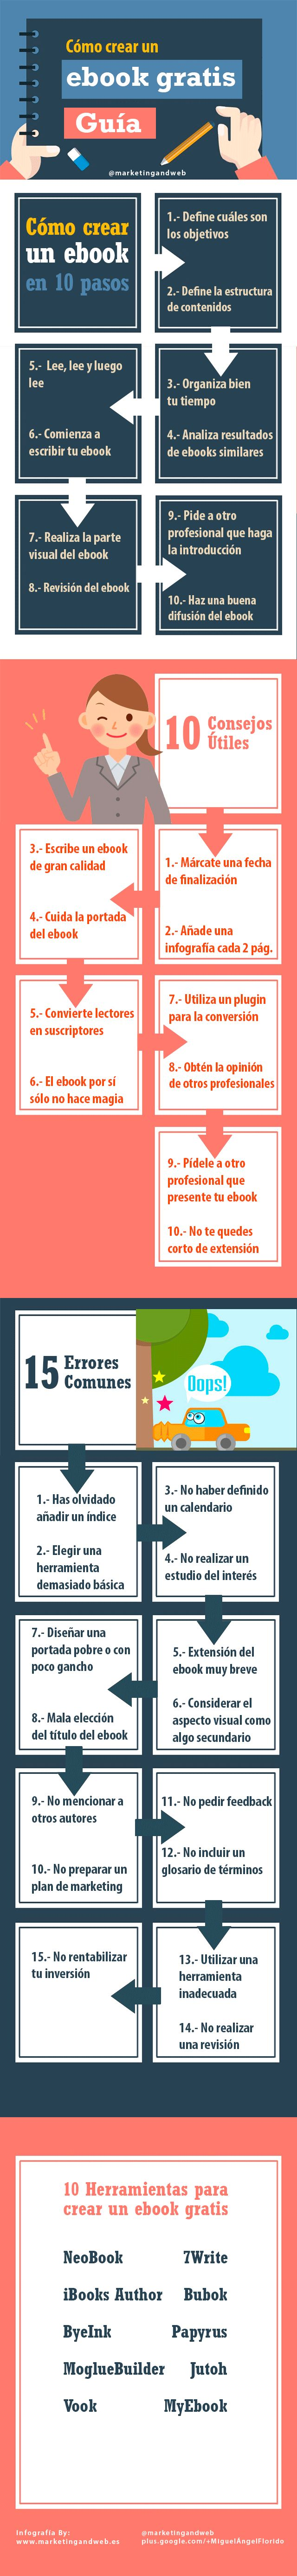 CÓMO CREAR UN #EBOOK GRATIS #INFOGRAFIA #INFOGRAPHIC #MARKETING #EDUCACION